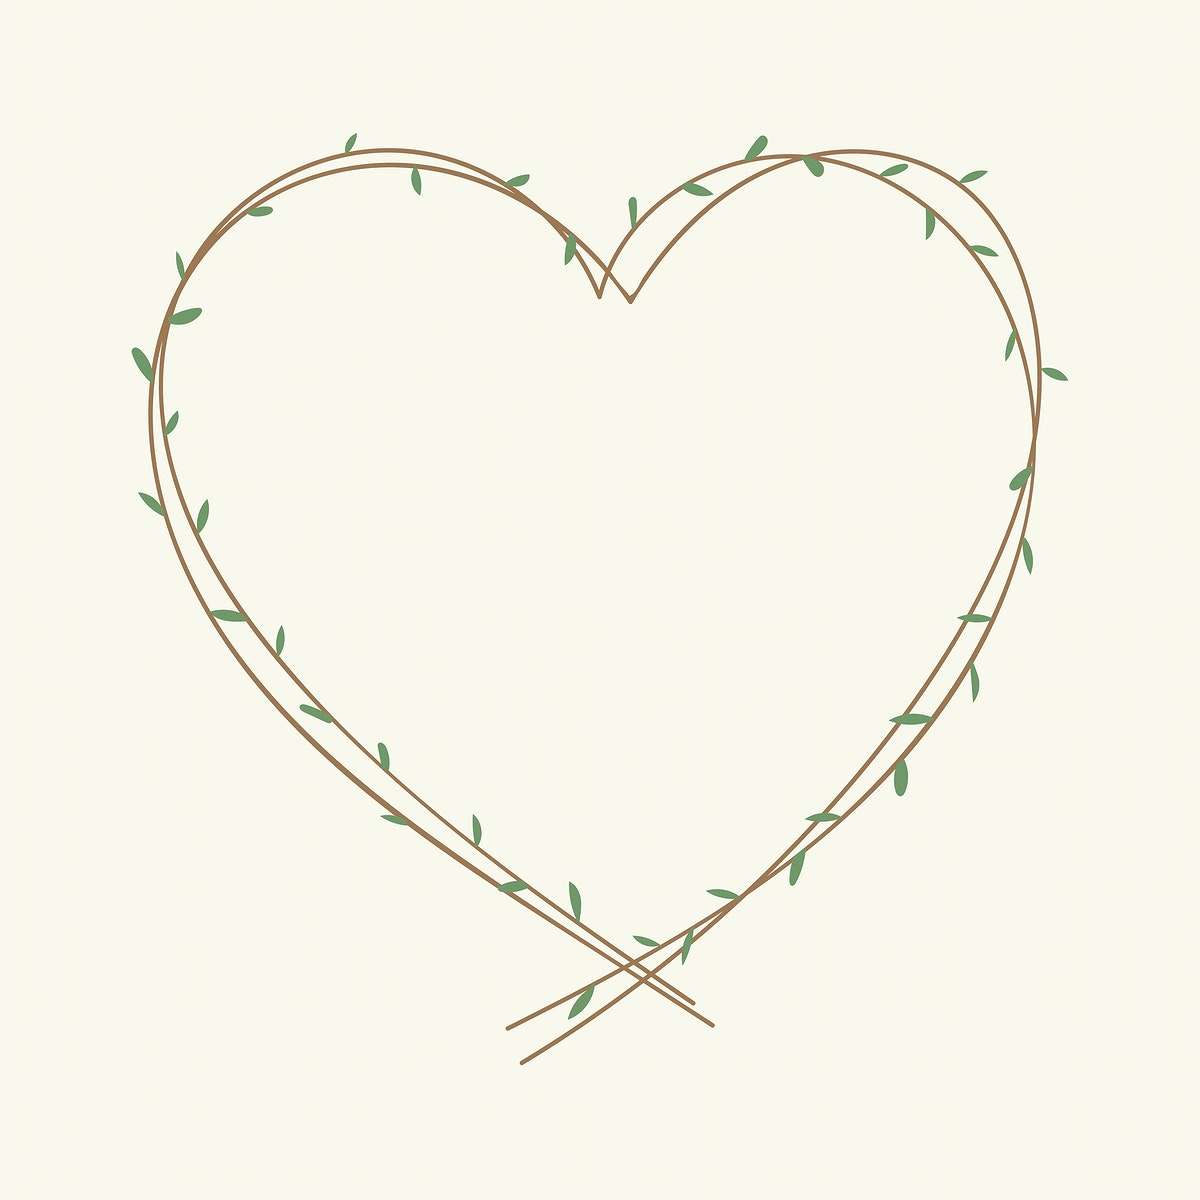 Green hearted wreath element illustration